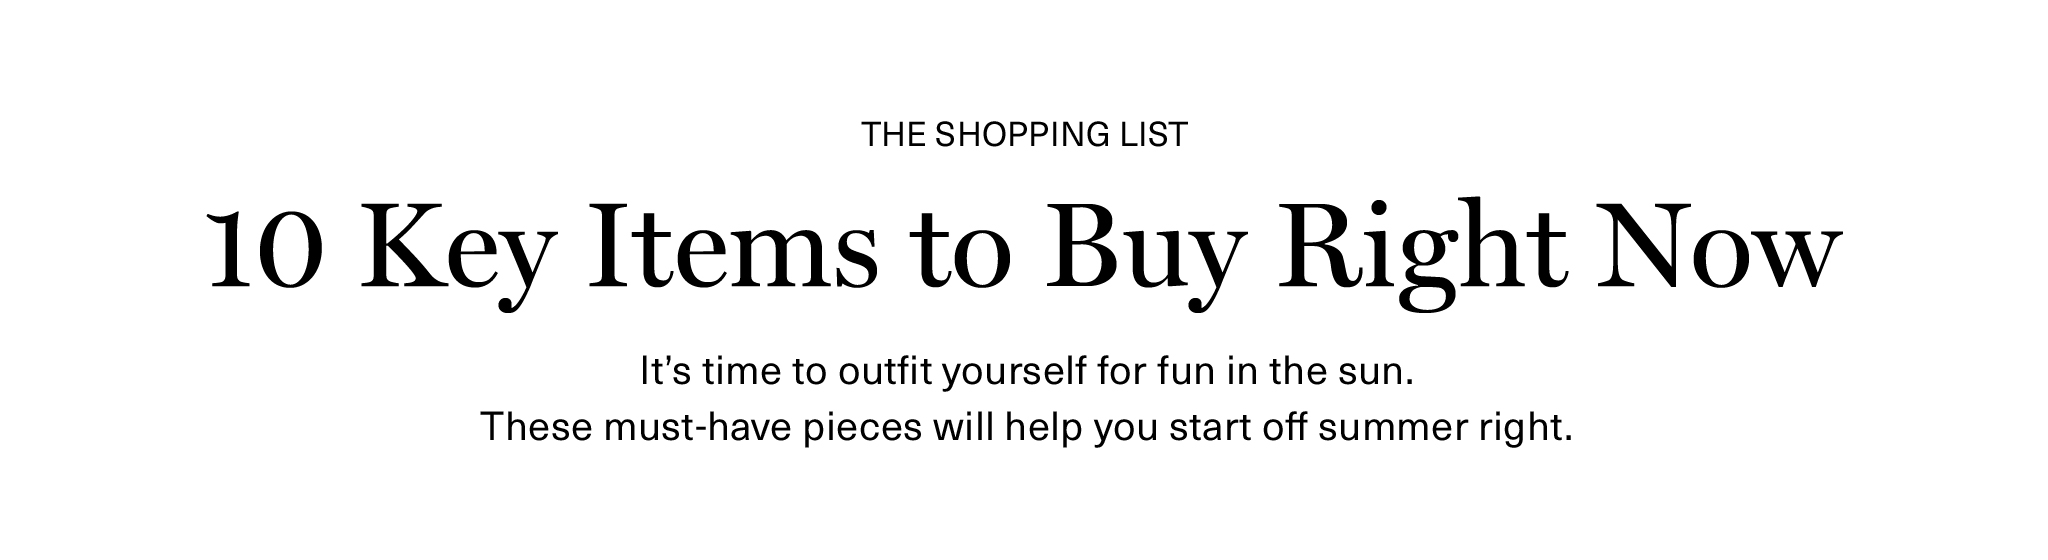 10 Key Items to Buy Right Now